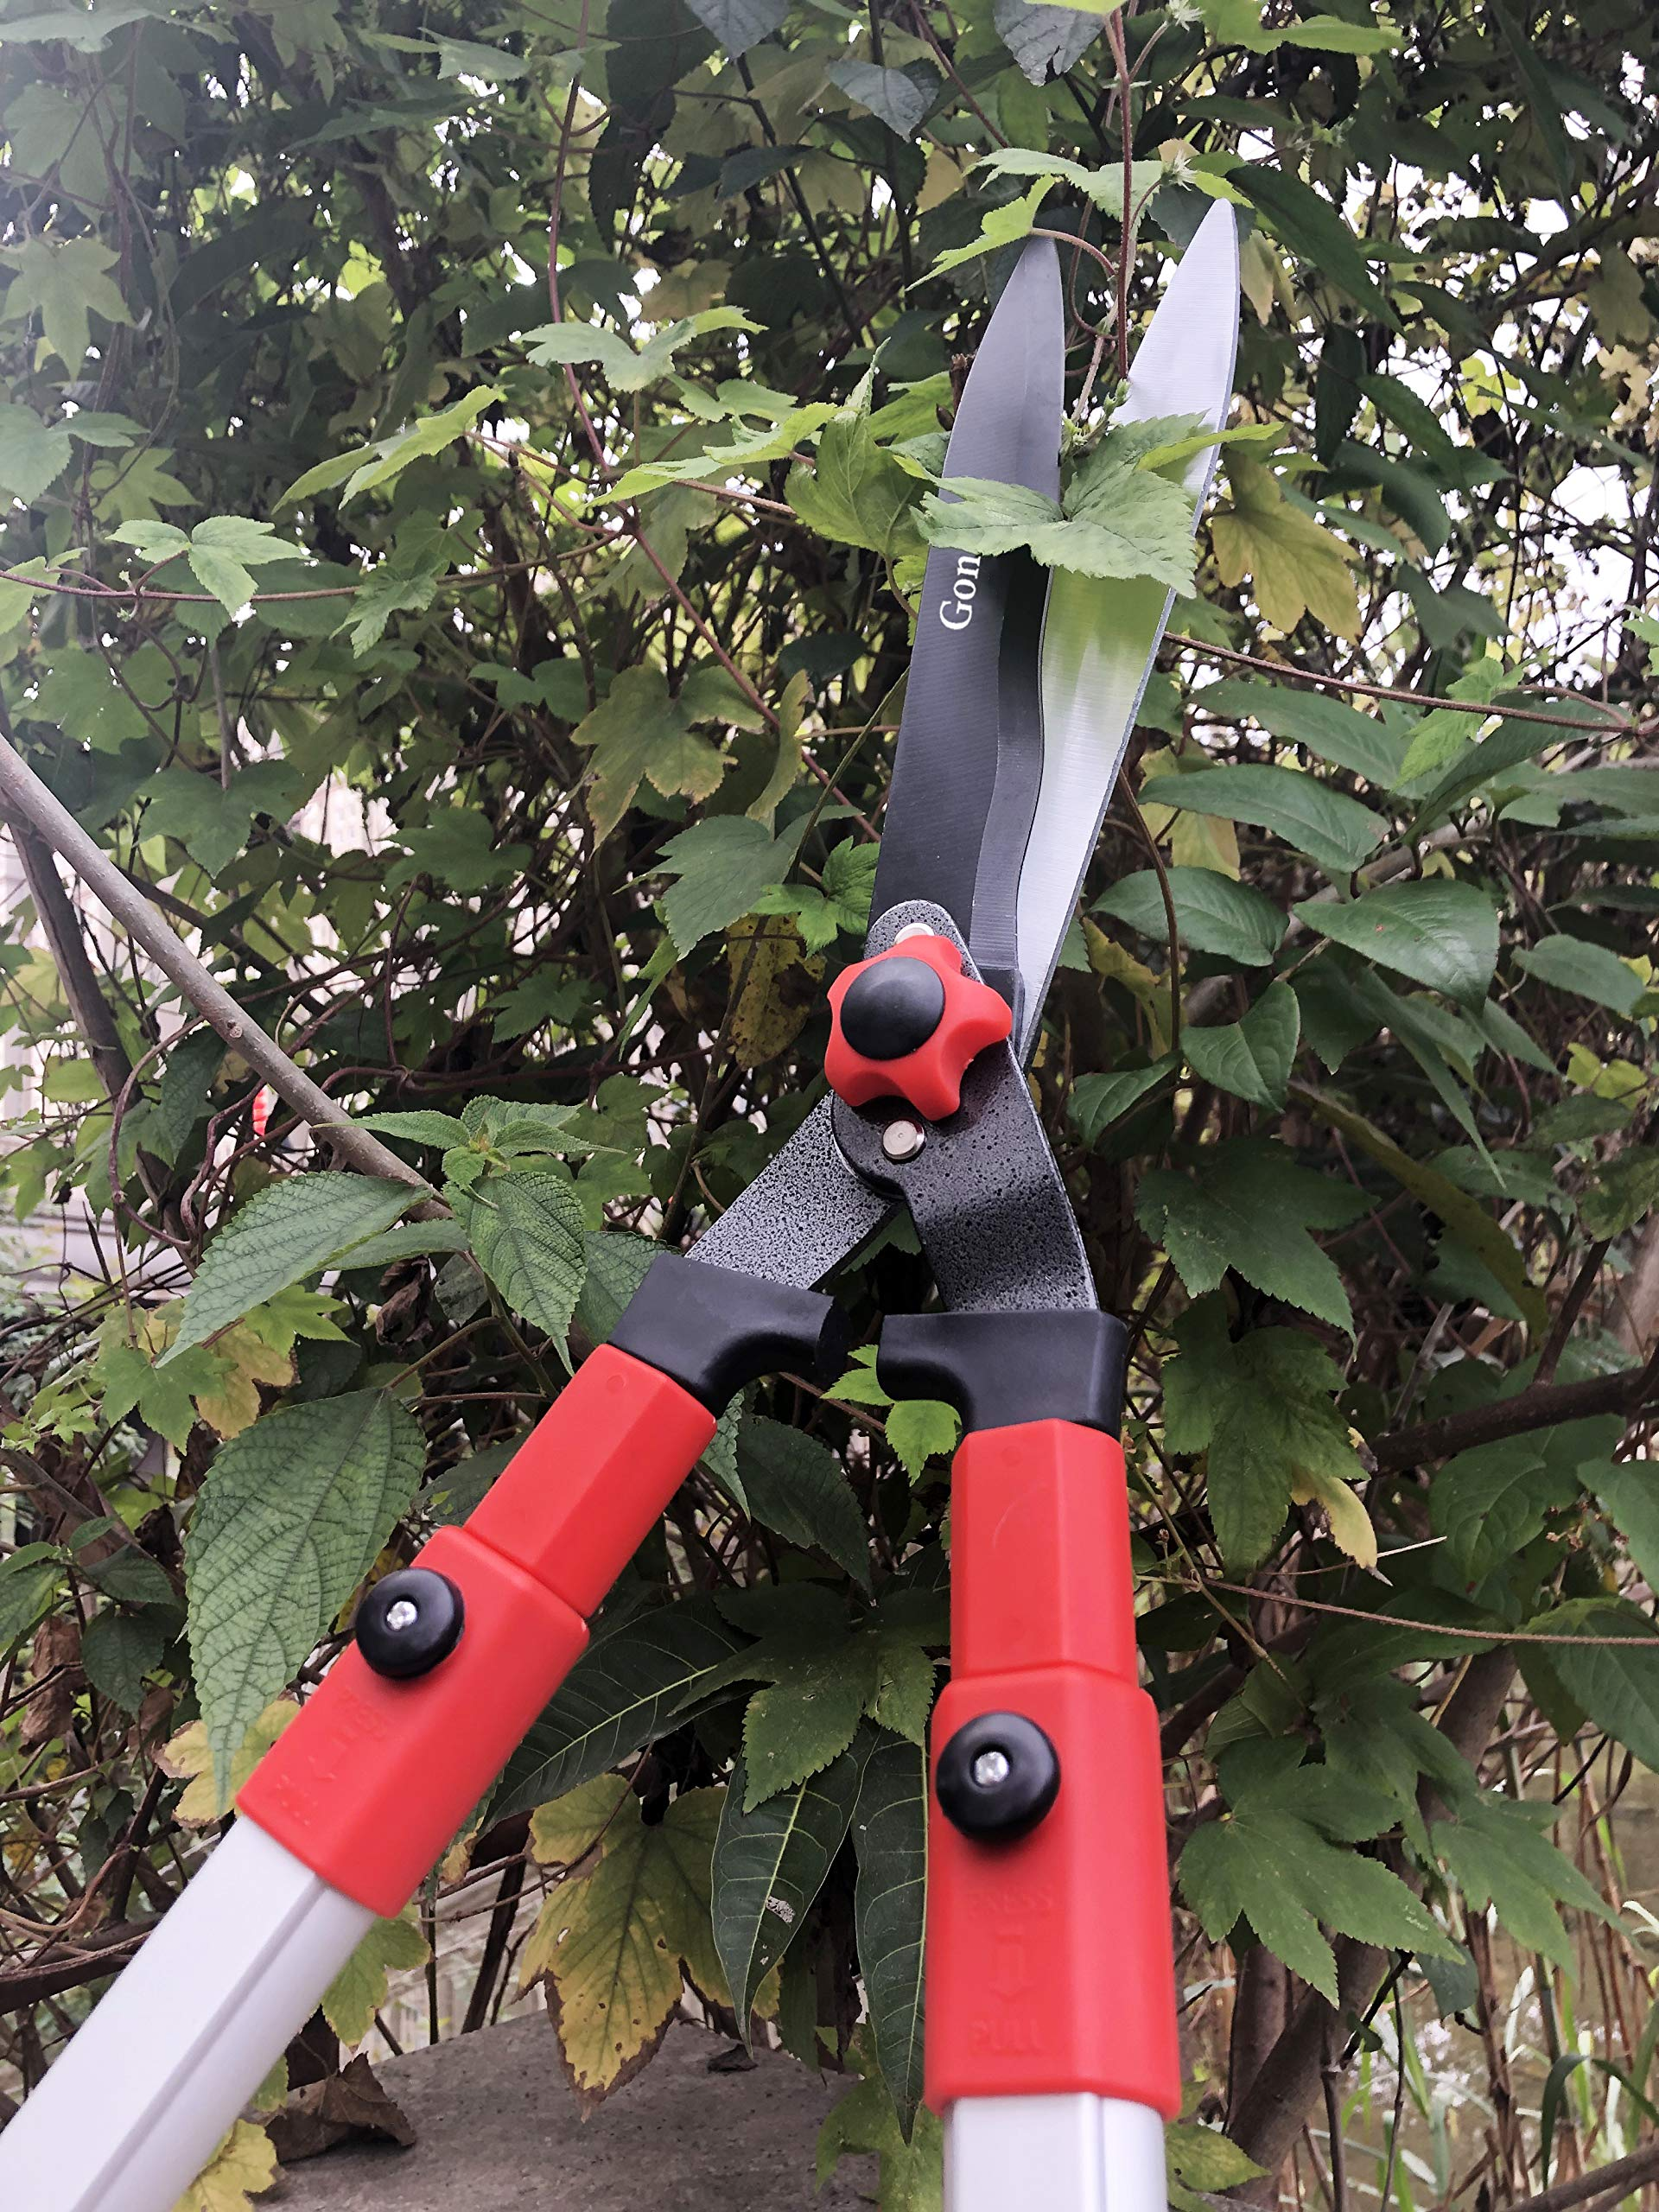 gonicc Professional Adjustable 25''+ 8'' Hedge Shears. with Wavy SK-5 Steel Blade and Shock Absorbing Desig, Adjustable Blade Pressure, Garden Pruning Hand Hedge Trimmers Clippers Shears by gonicc (Image #6)